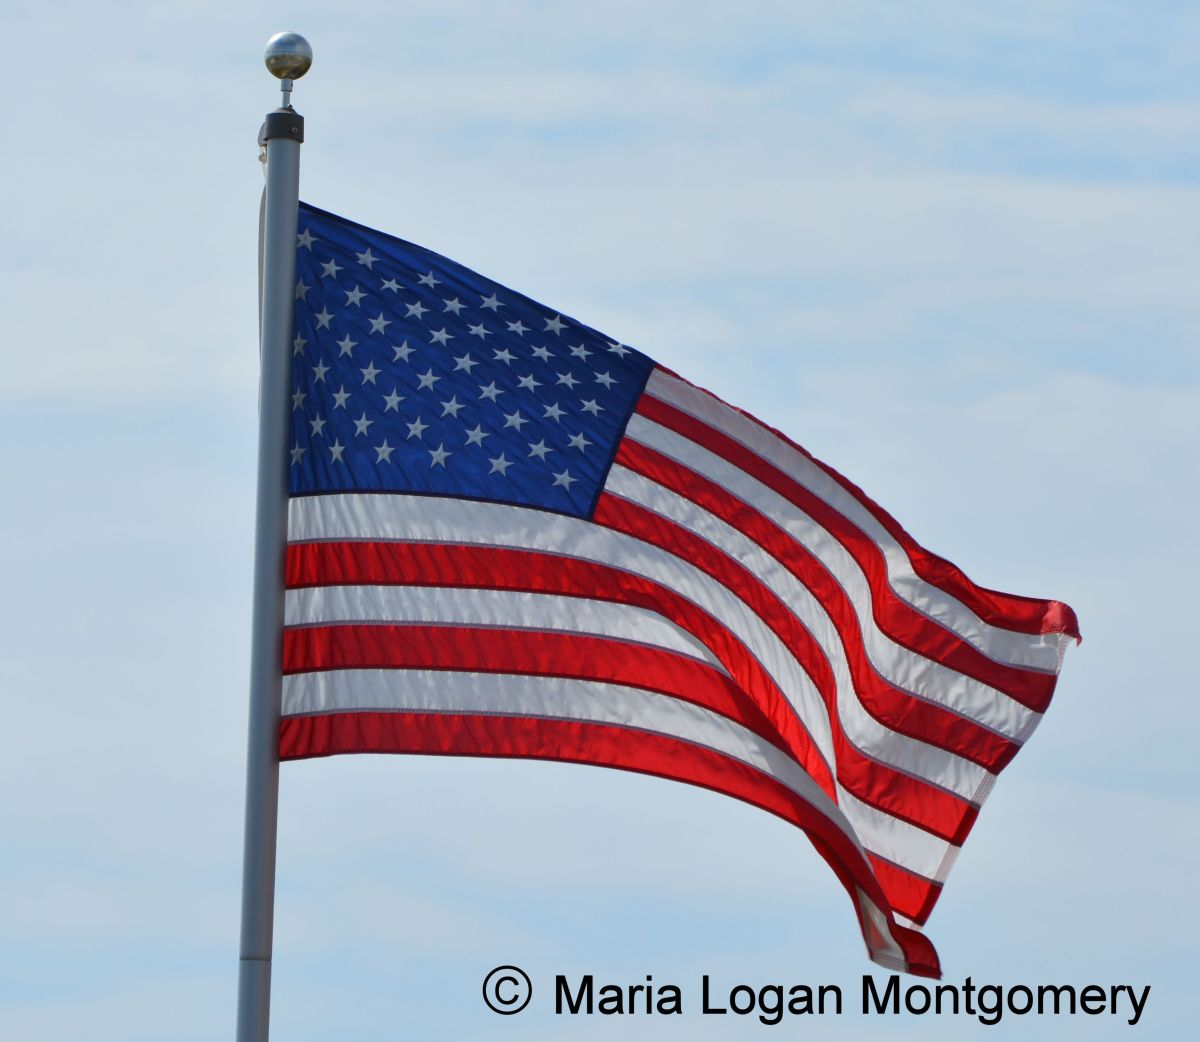 Laws and Guidelines for Civilians Displaying the American Flag